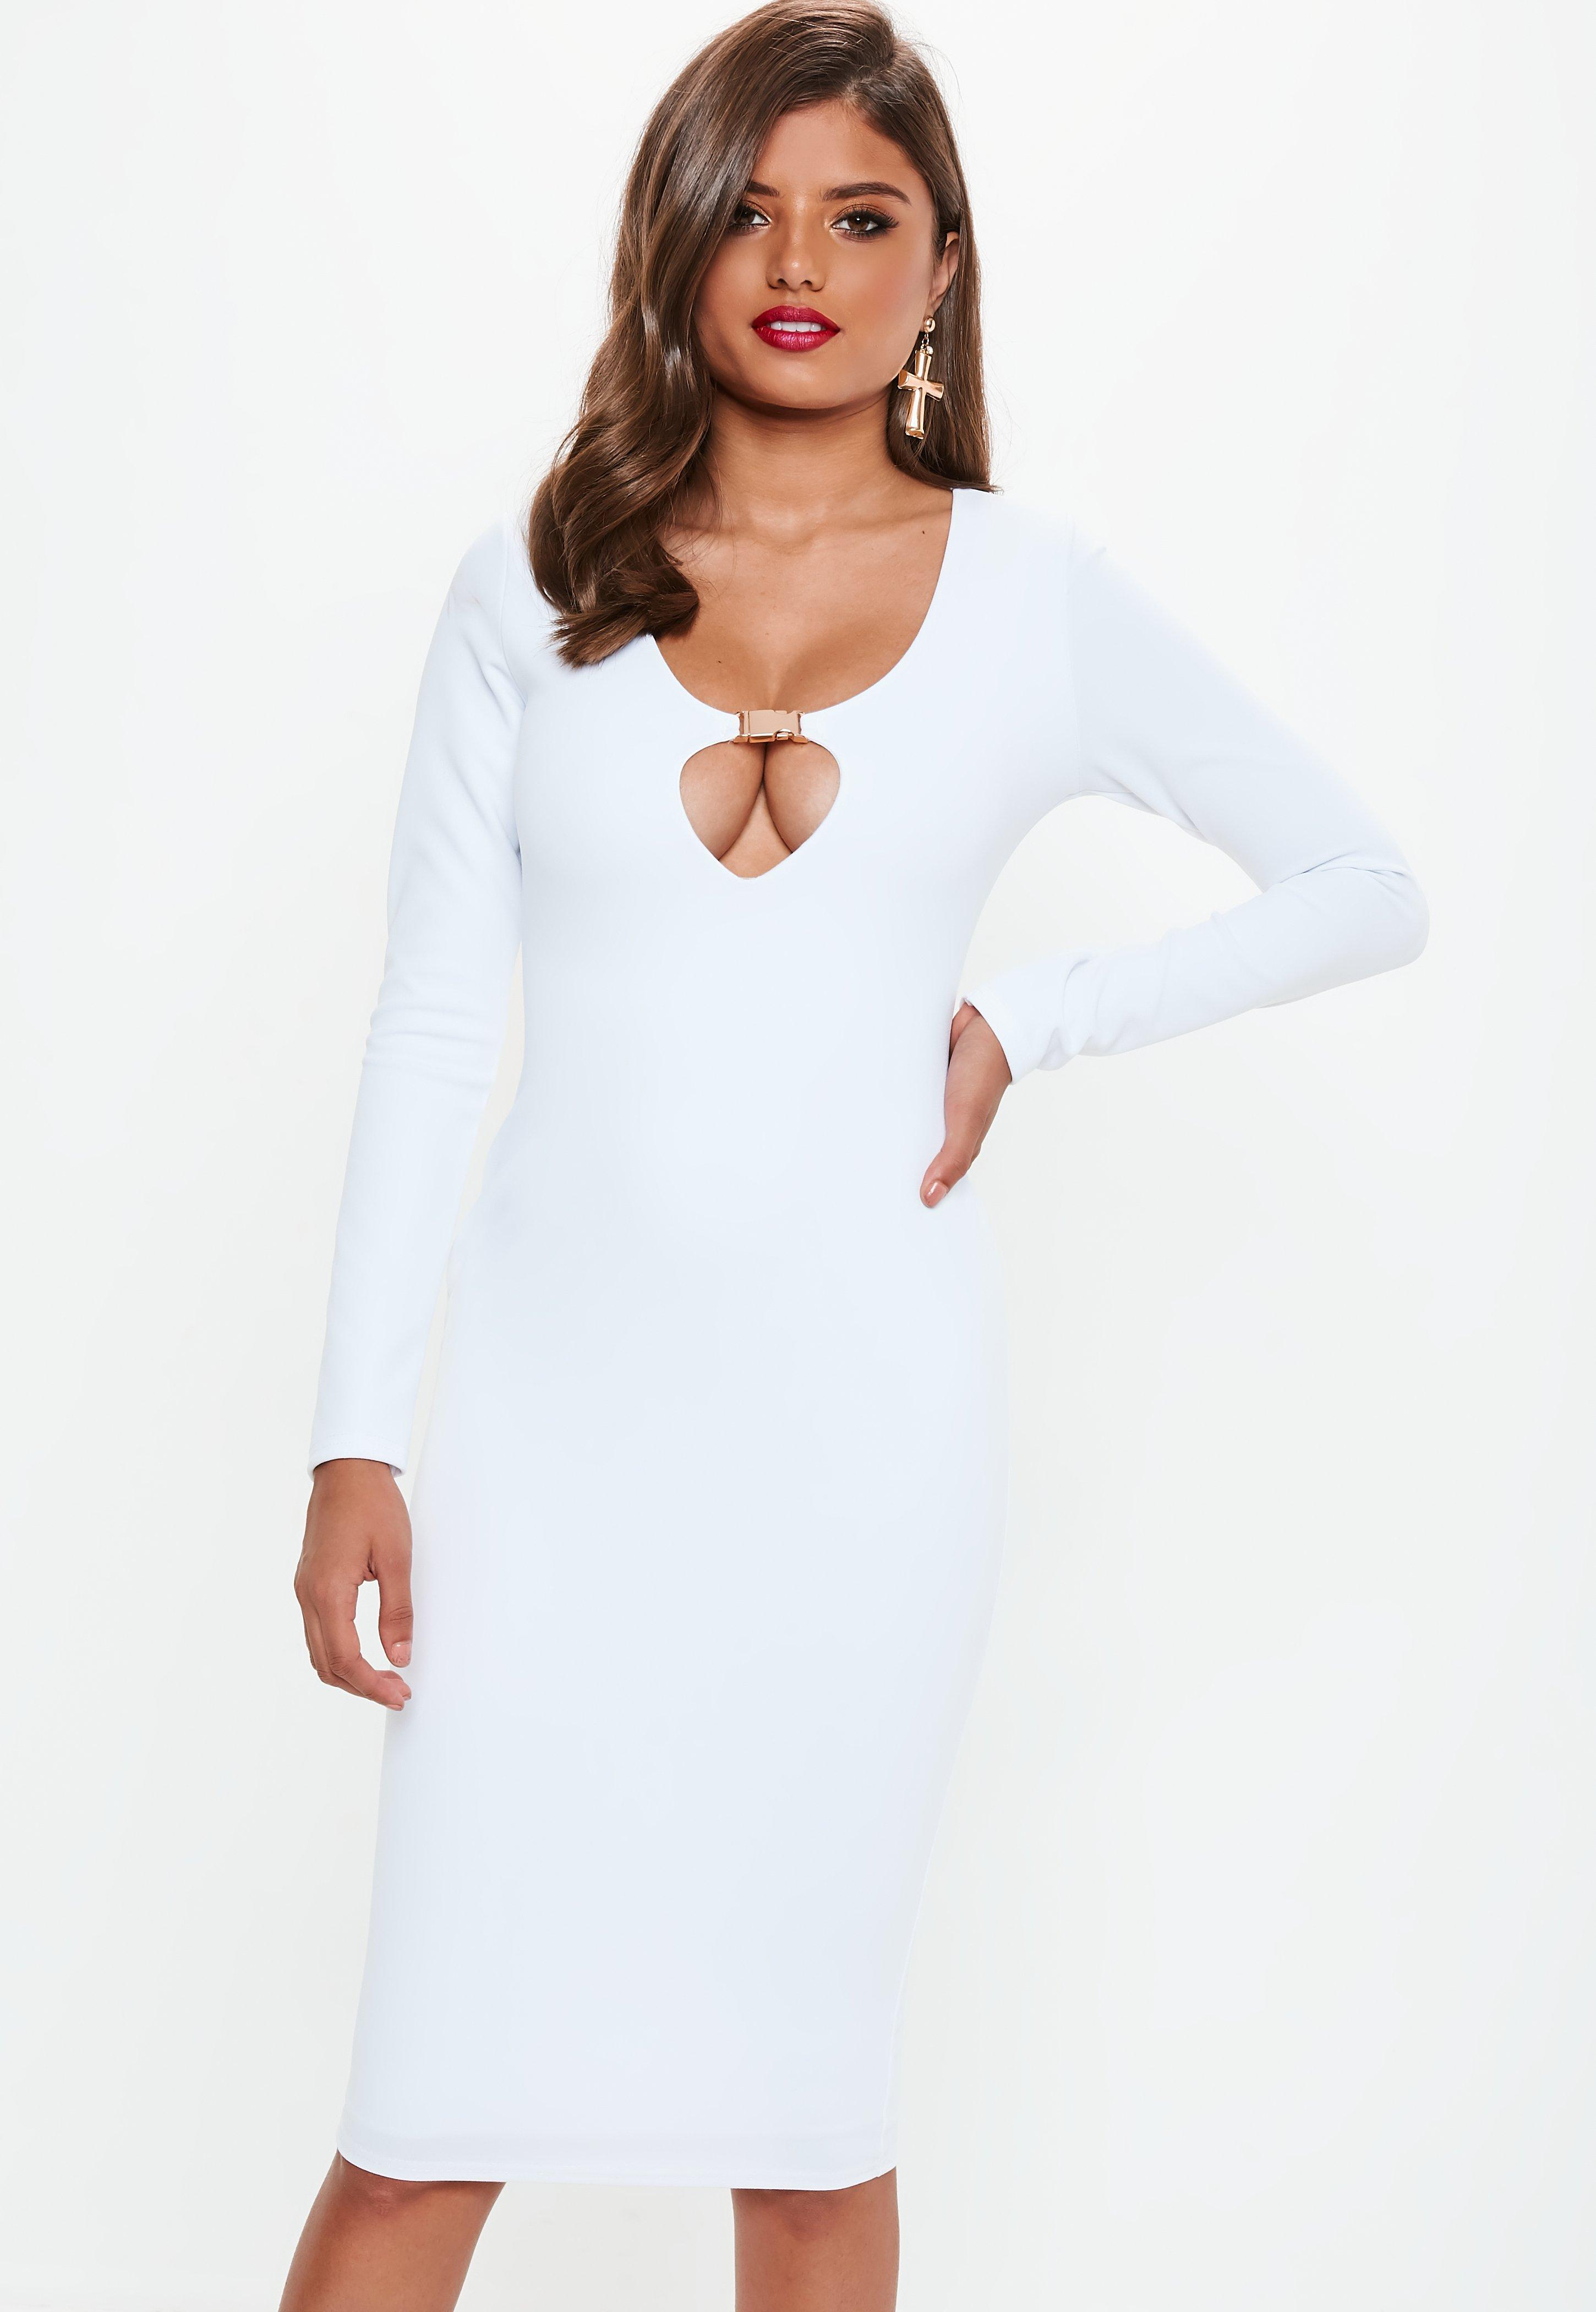 96b4033809af4 Lyst - Missguided White Long Sleeve Buckle Midi Dress in White